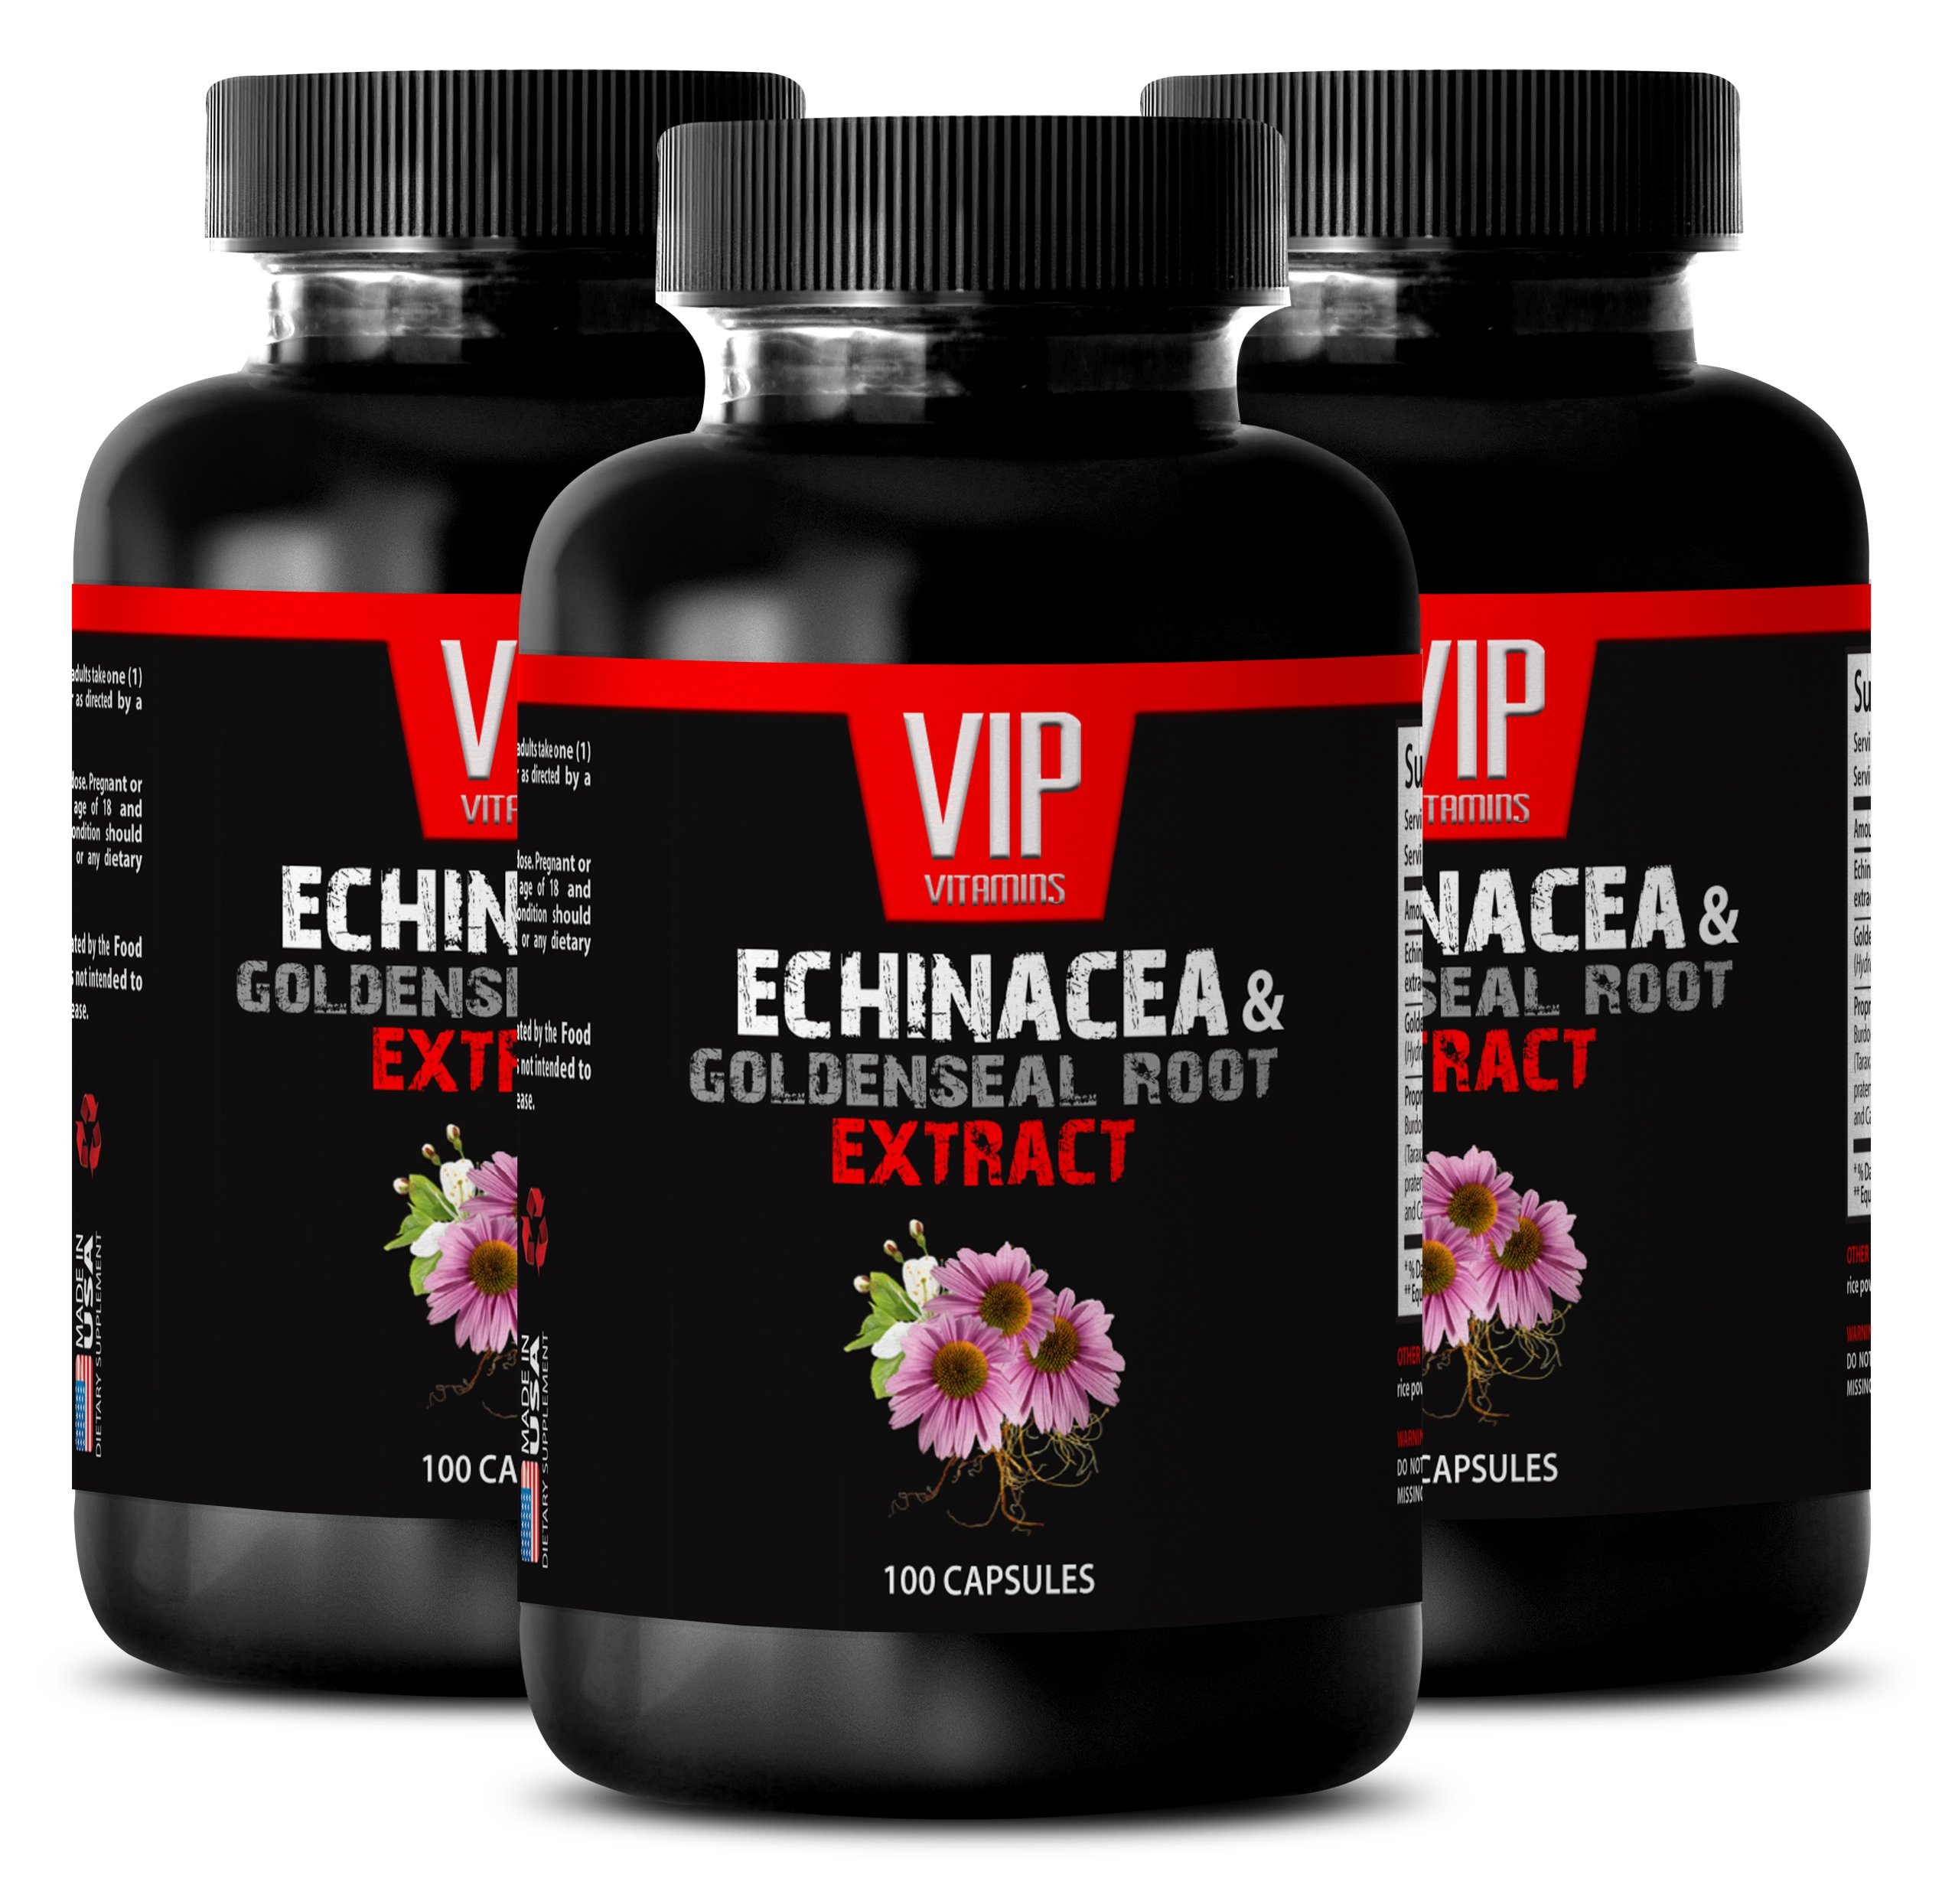 Boost energy pills - ECHINACEA AND GOLDENSEAL ROOT EXTRACT - Goldenseal echinacea capsules - 3 Bottles 300 Capsules